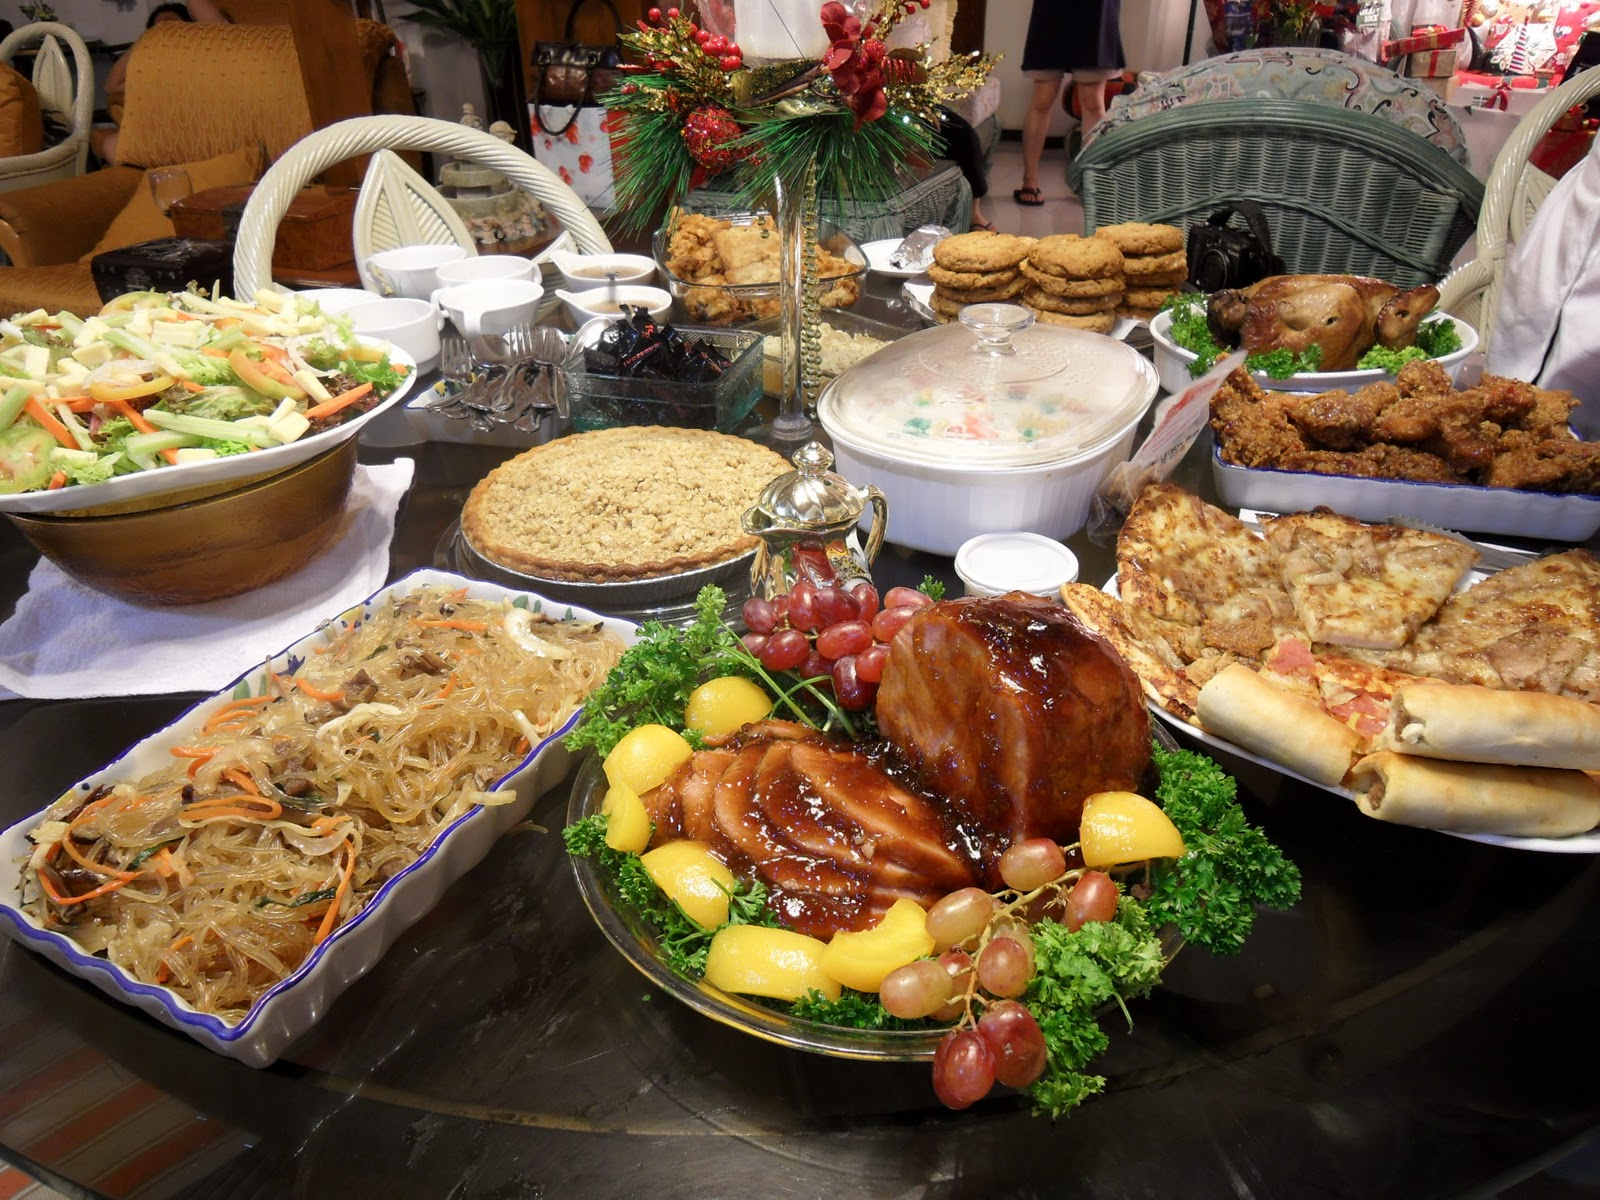 Filipino table setting - Christmas Is The Most Celebrated Feast In The Philippines Rich Or Poor Everybody Prepared Noche Buena Dishes On Christmas Eve To Be Shared By The Family